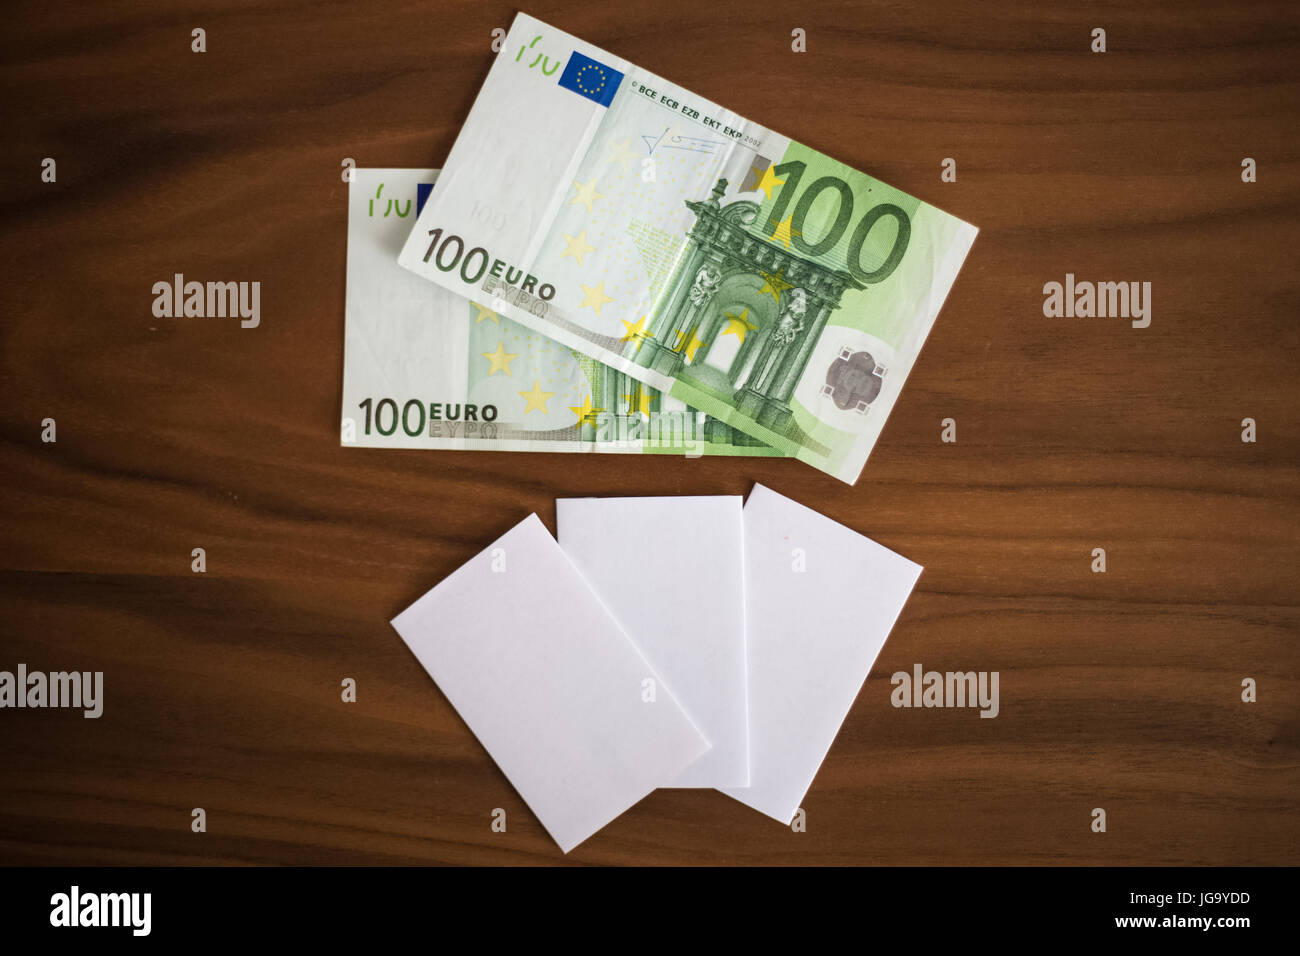 Bank Cards Business Cards Cash Money On A Wooden Background Stock